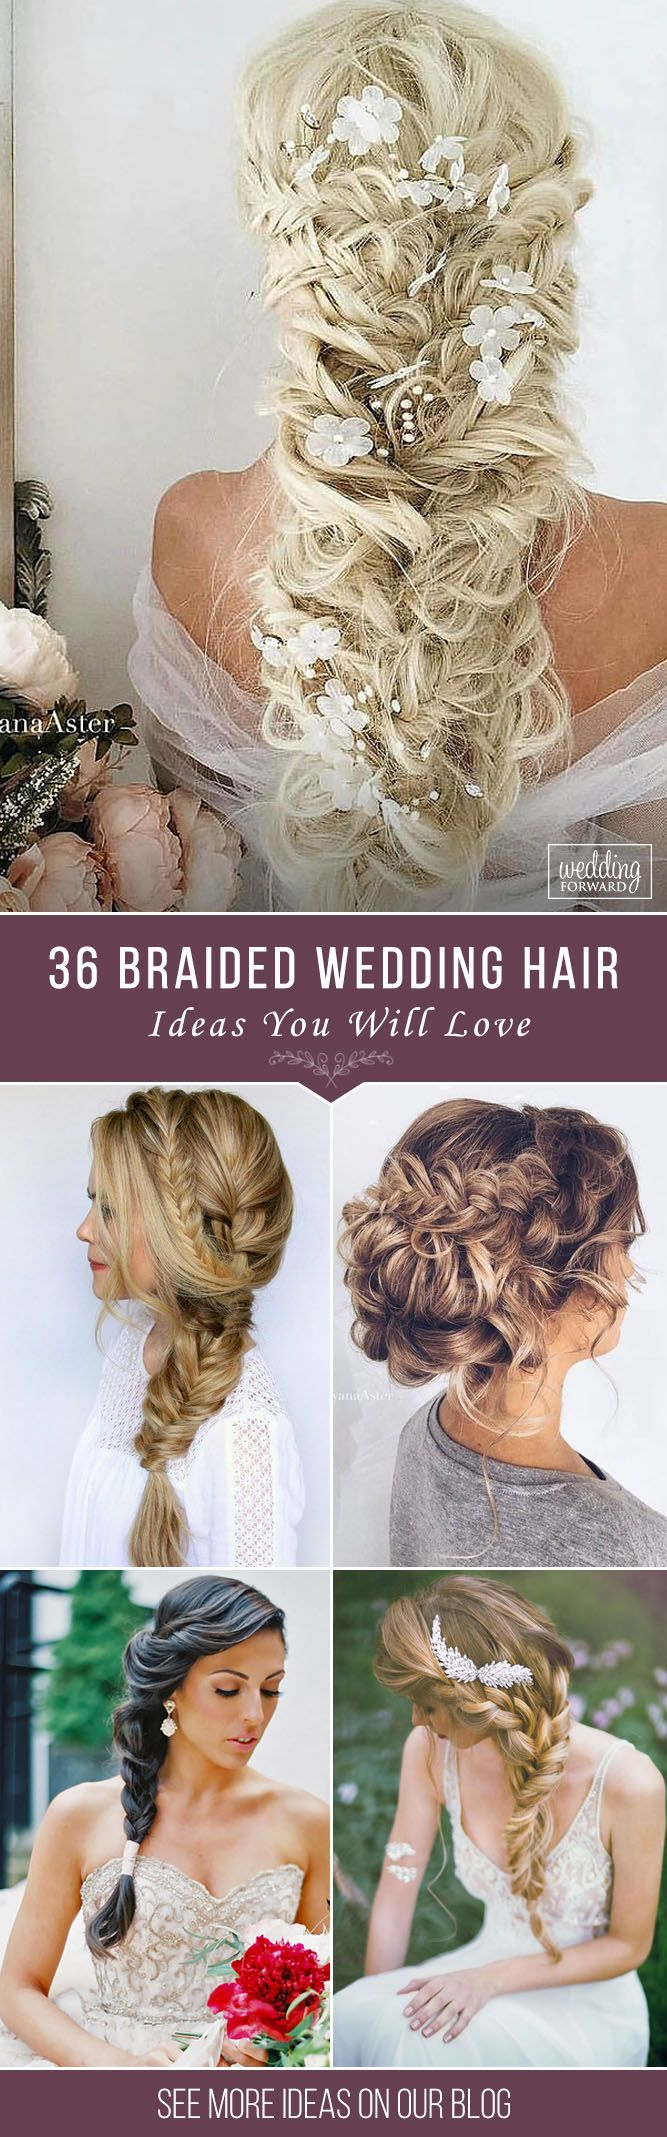 36 Braided Wedding Hair Ideas You Will Love ❤ From soft waves to gorgeous updo...